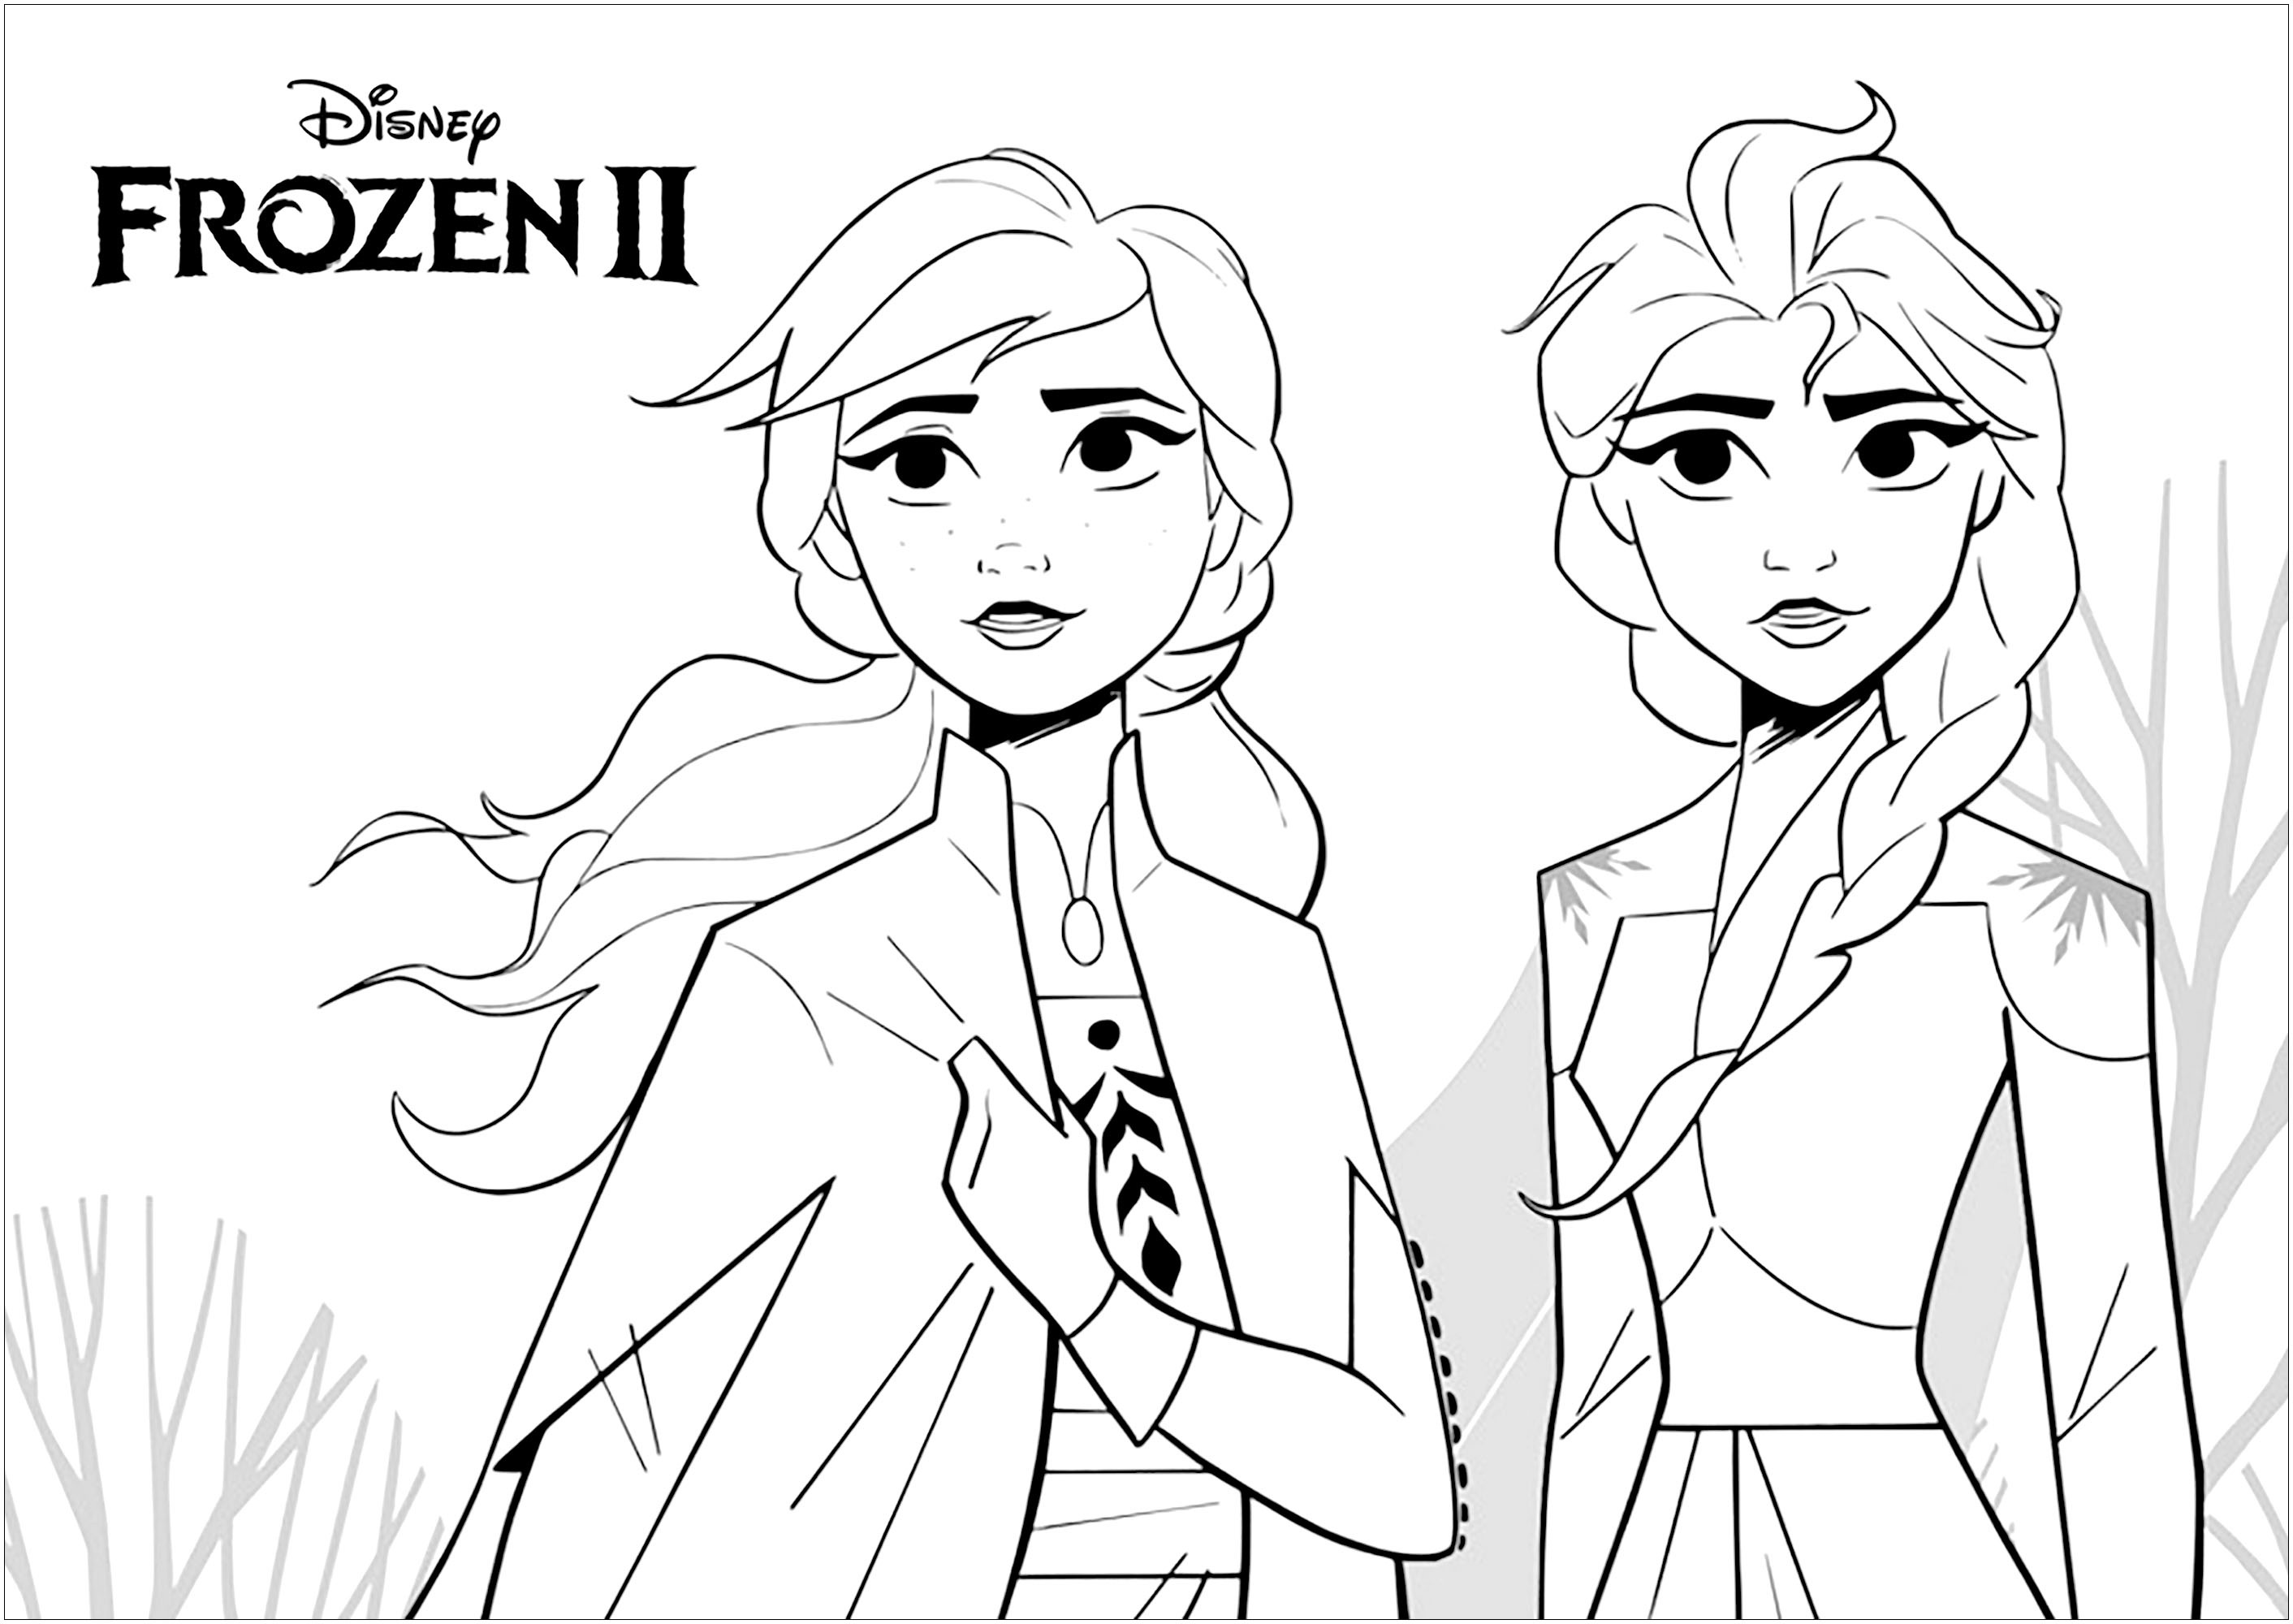 frozen colouring pages frozen 2 for kids frozen 2 kids coloring pages pages colouring frozen